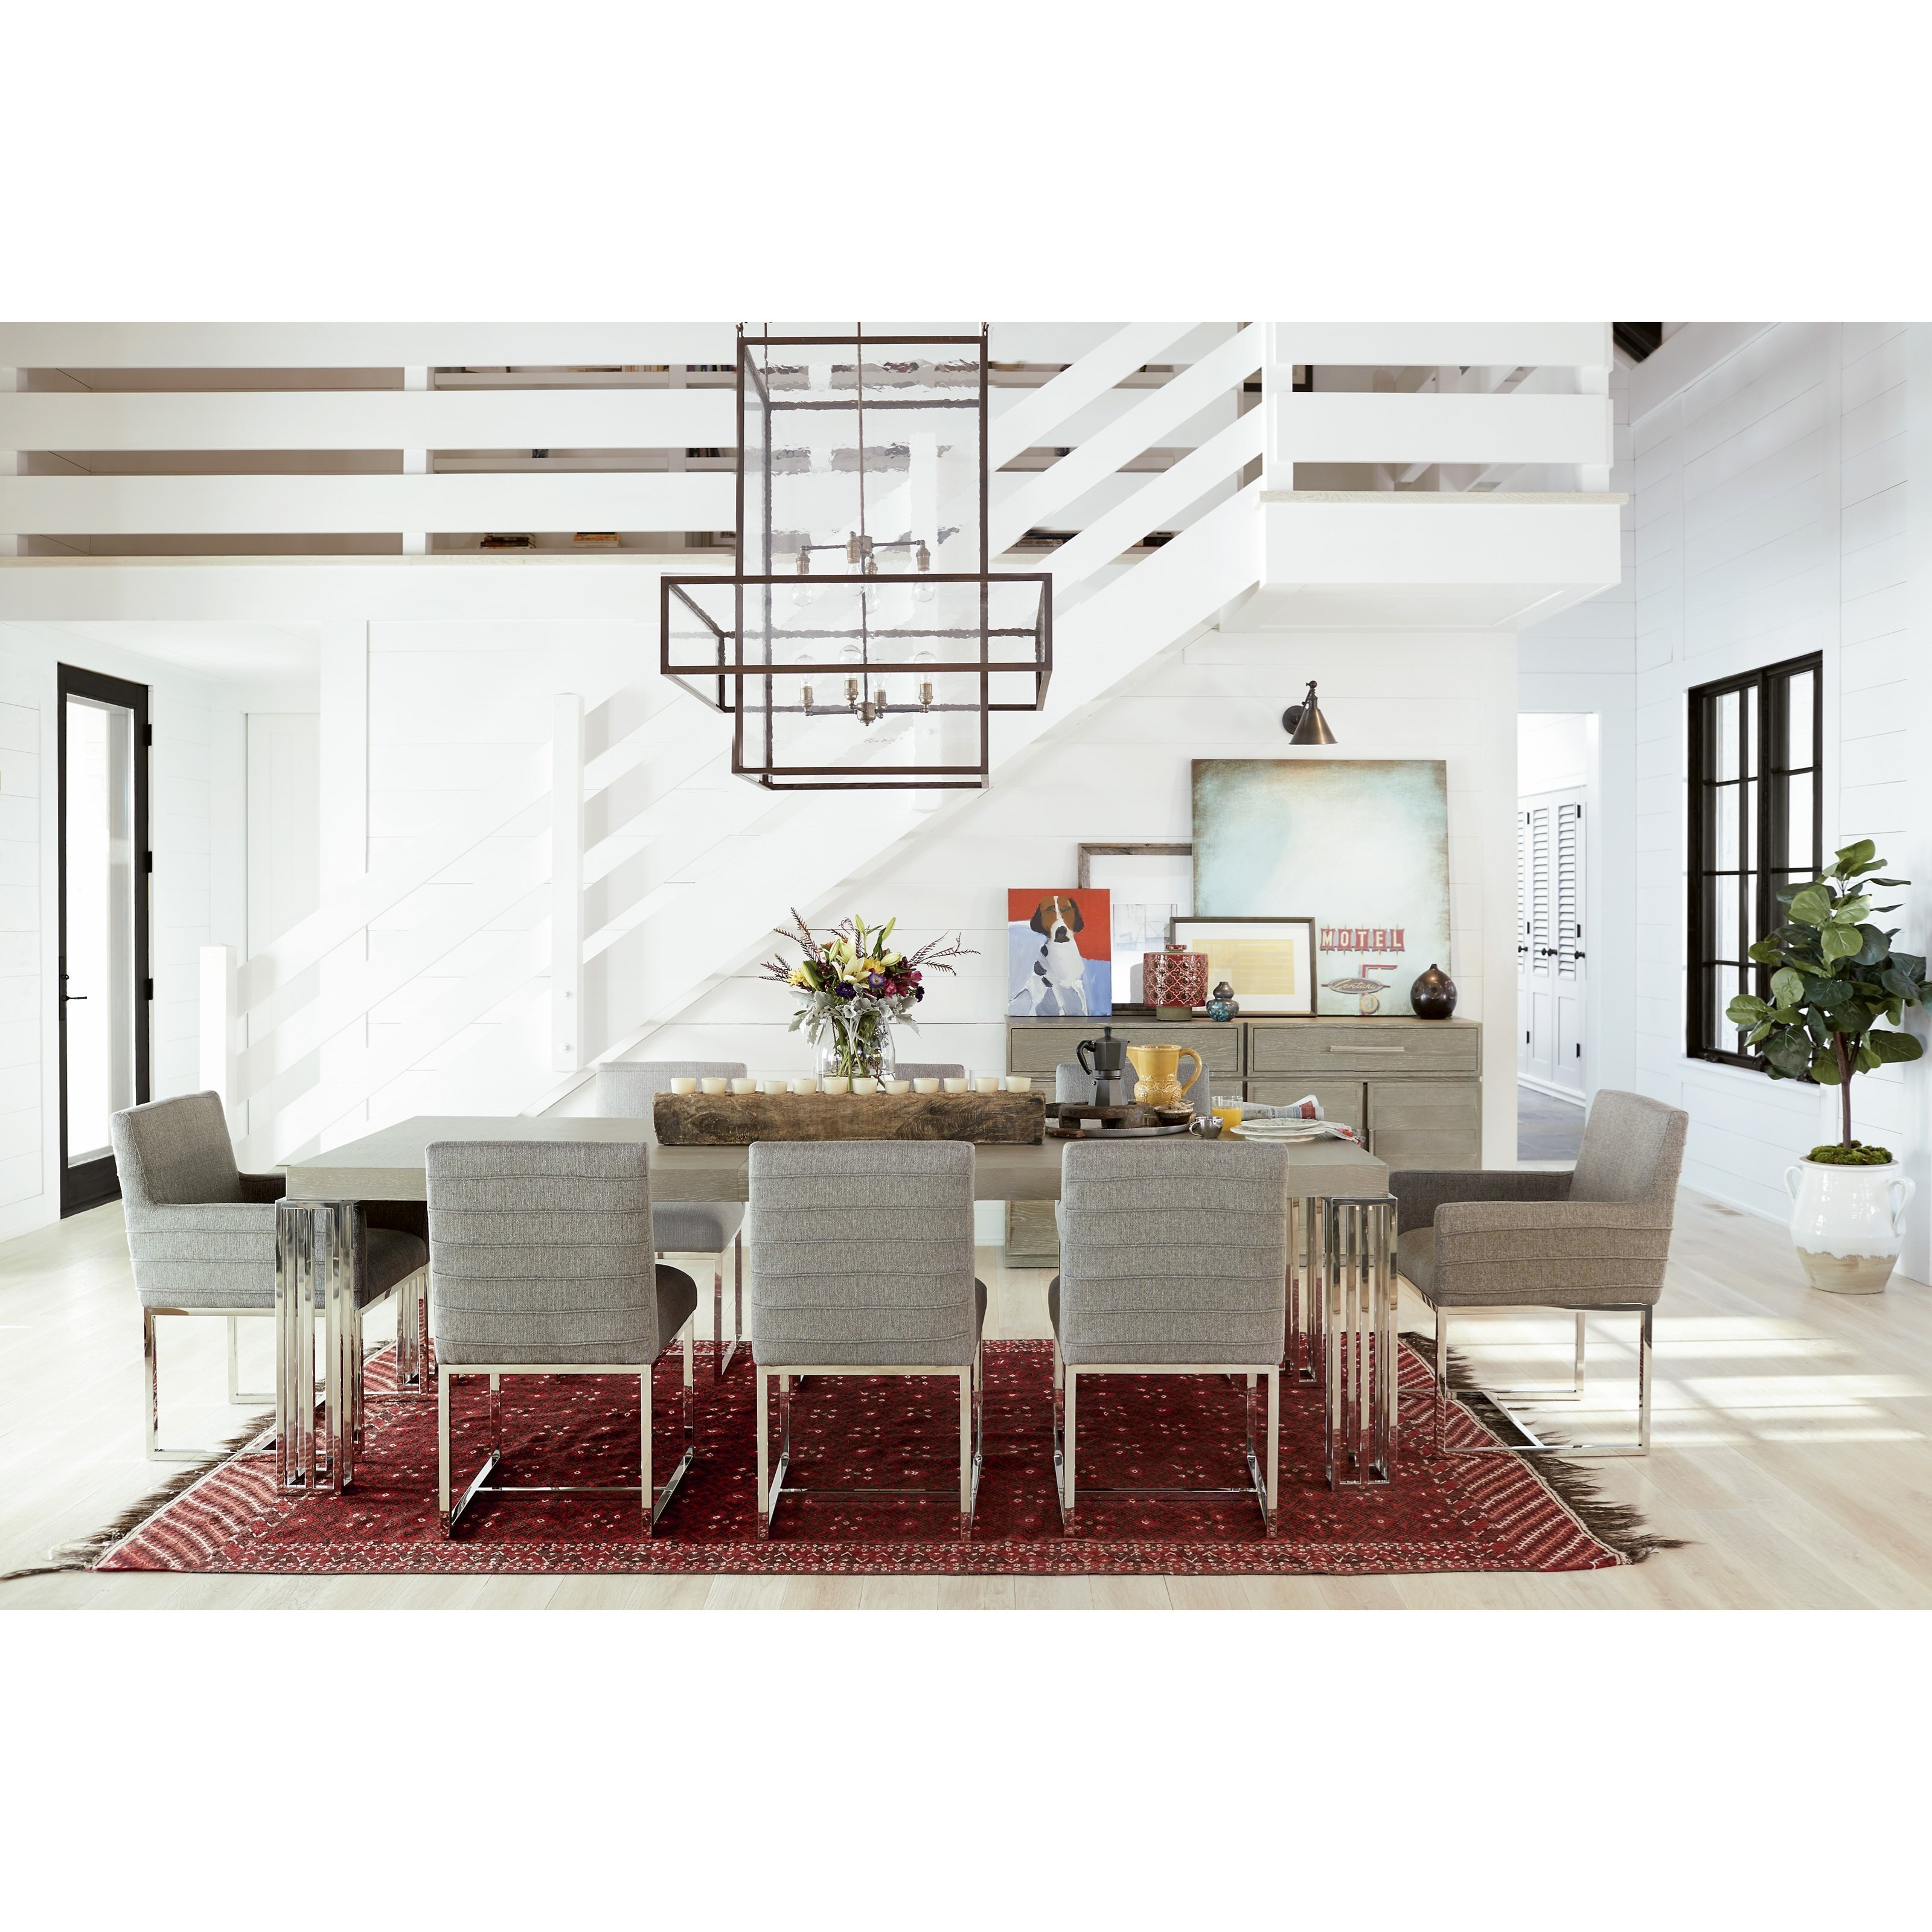 Zephyr Formal Dining Room Group by Universal at Baer's Furniture